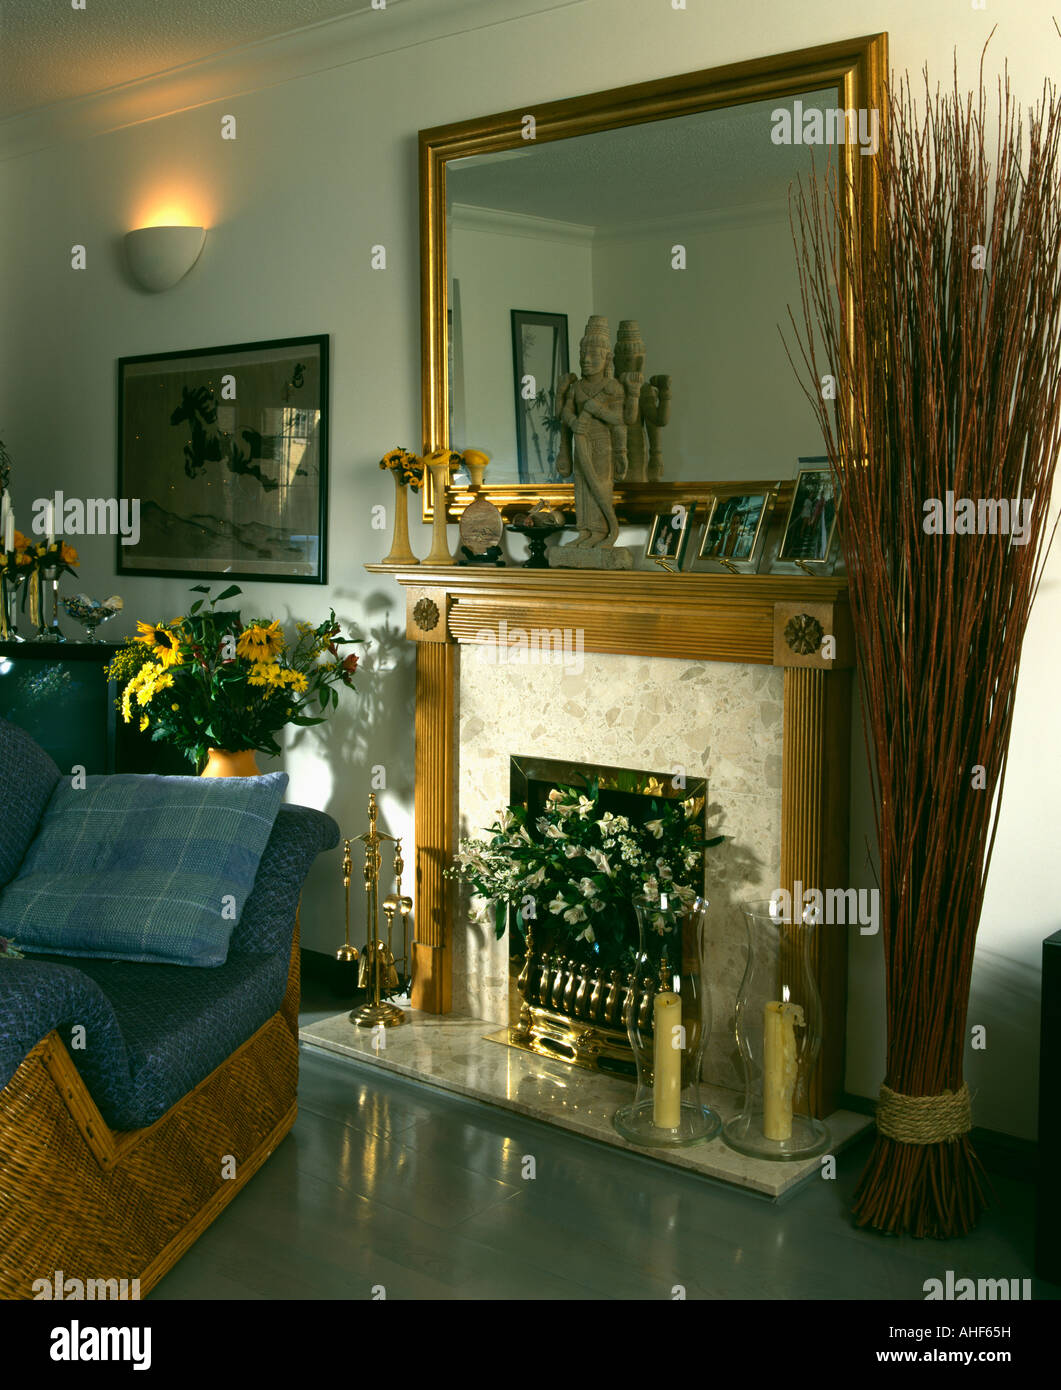 Decorative Mirrors For Above Fireplace Decorative Mirrors For